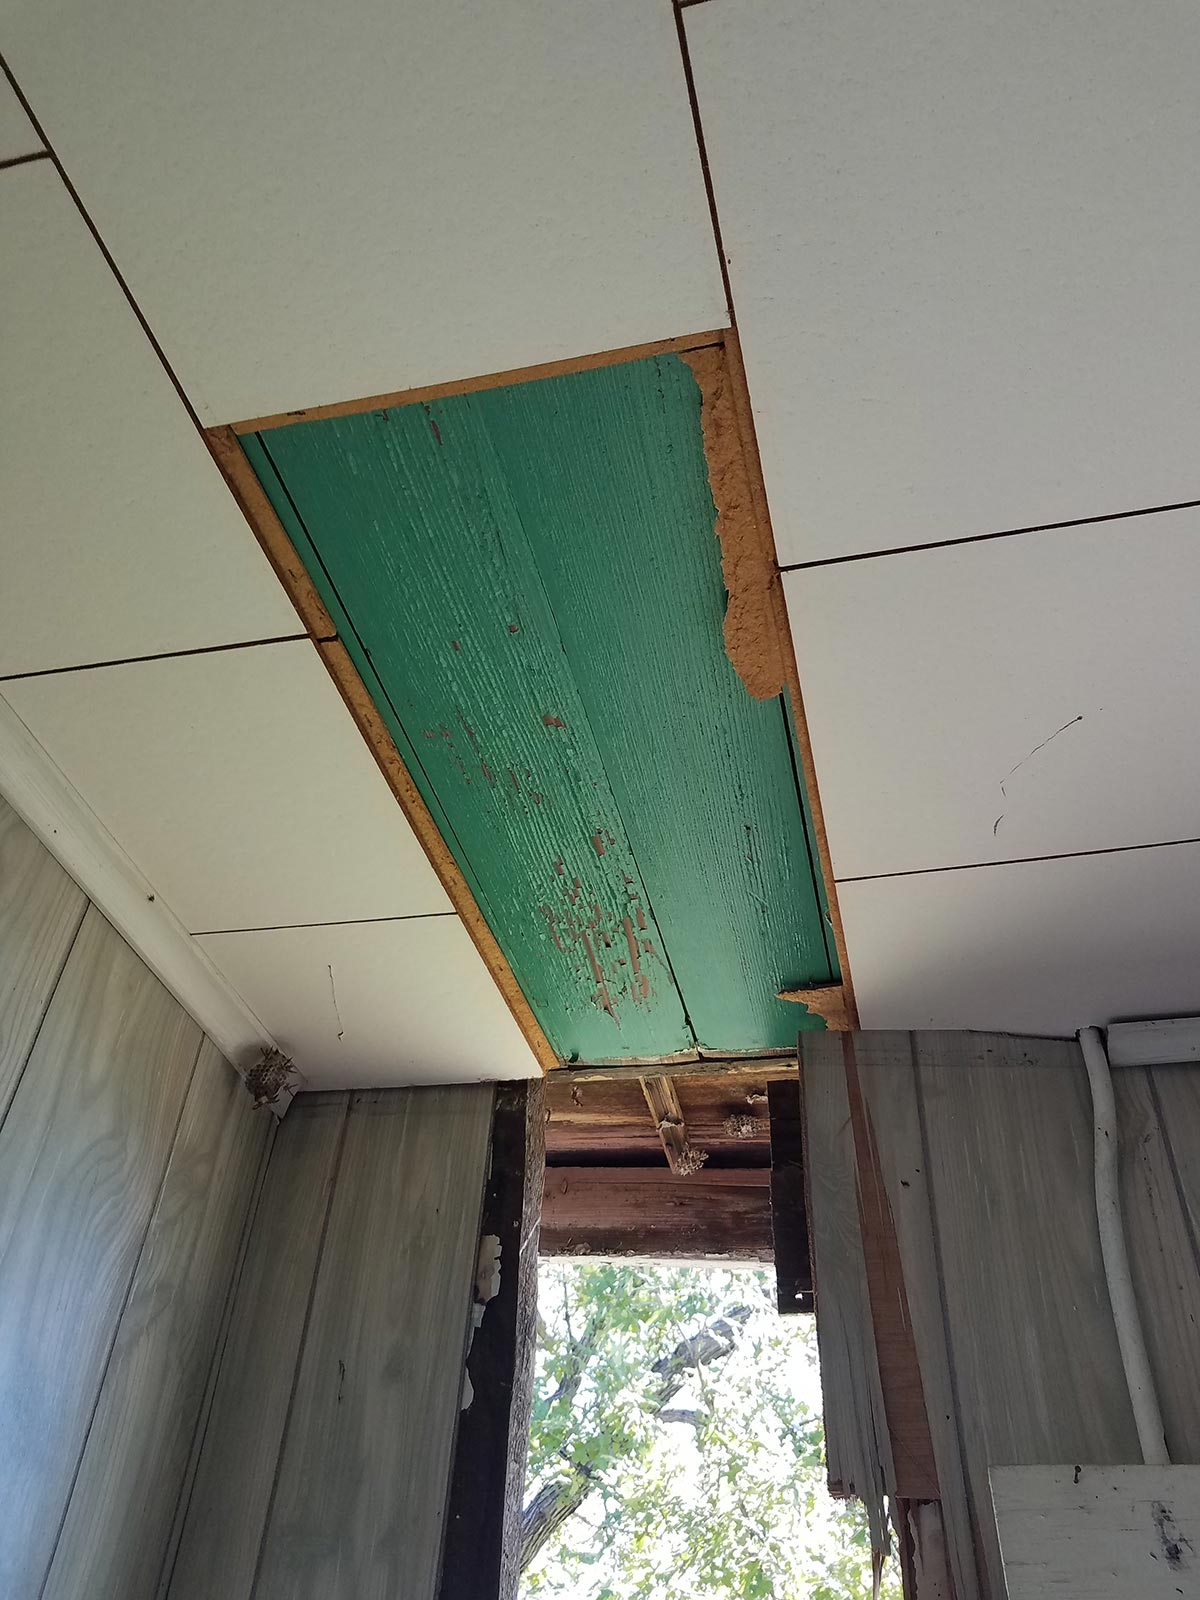 A wooden bedroom ceiling was painted an unexpected jewel tone before it was covered over with a new material, then weather and water damage revealed it again when a section of exterior wall collapsed.